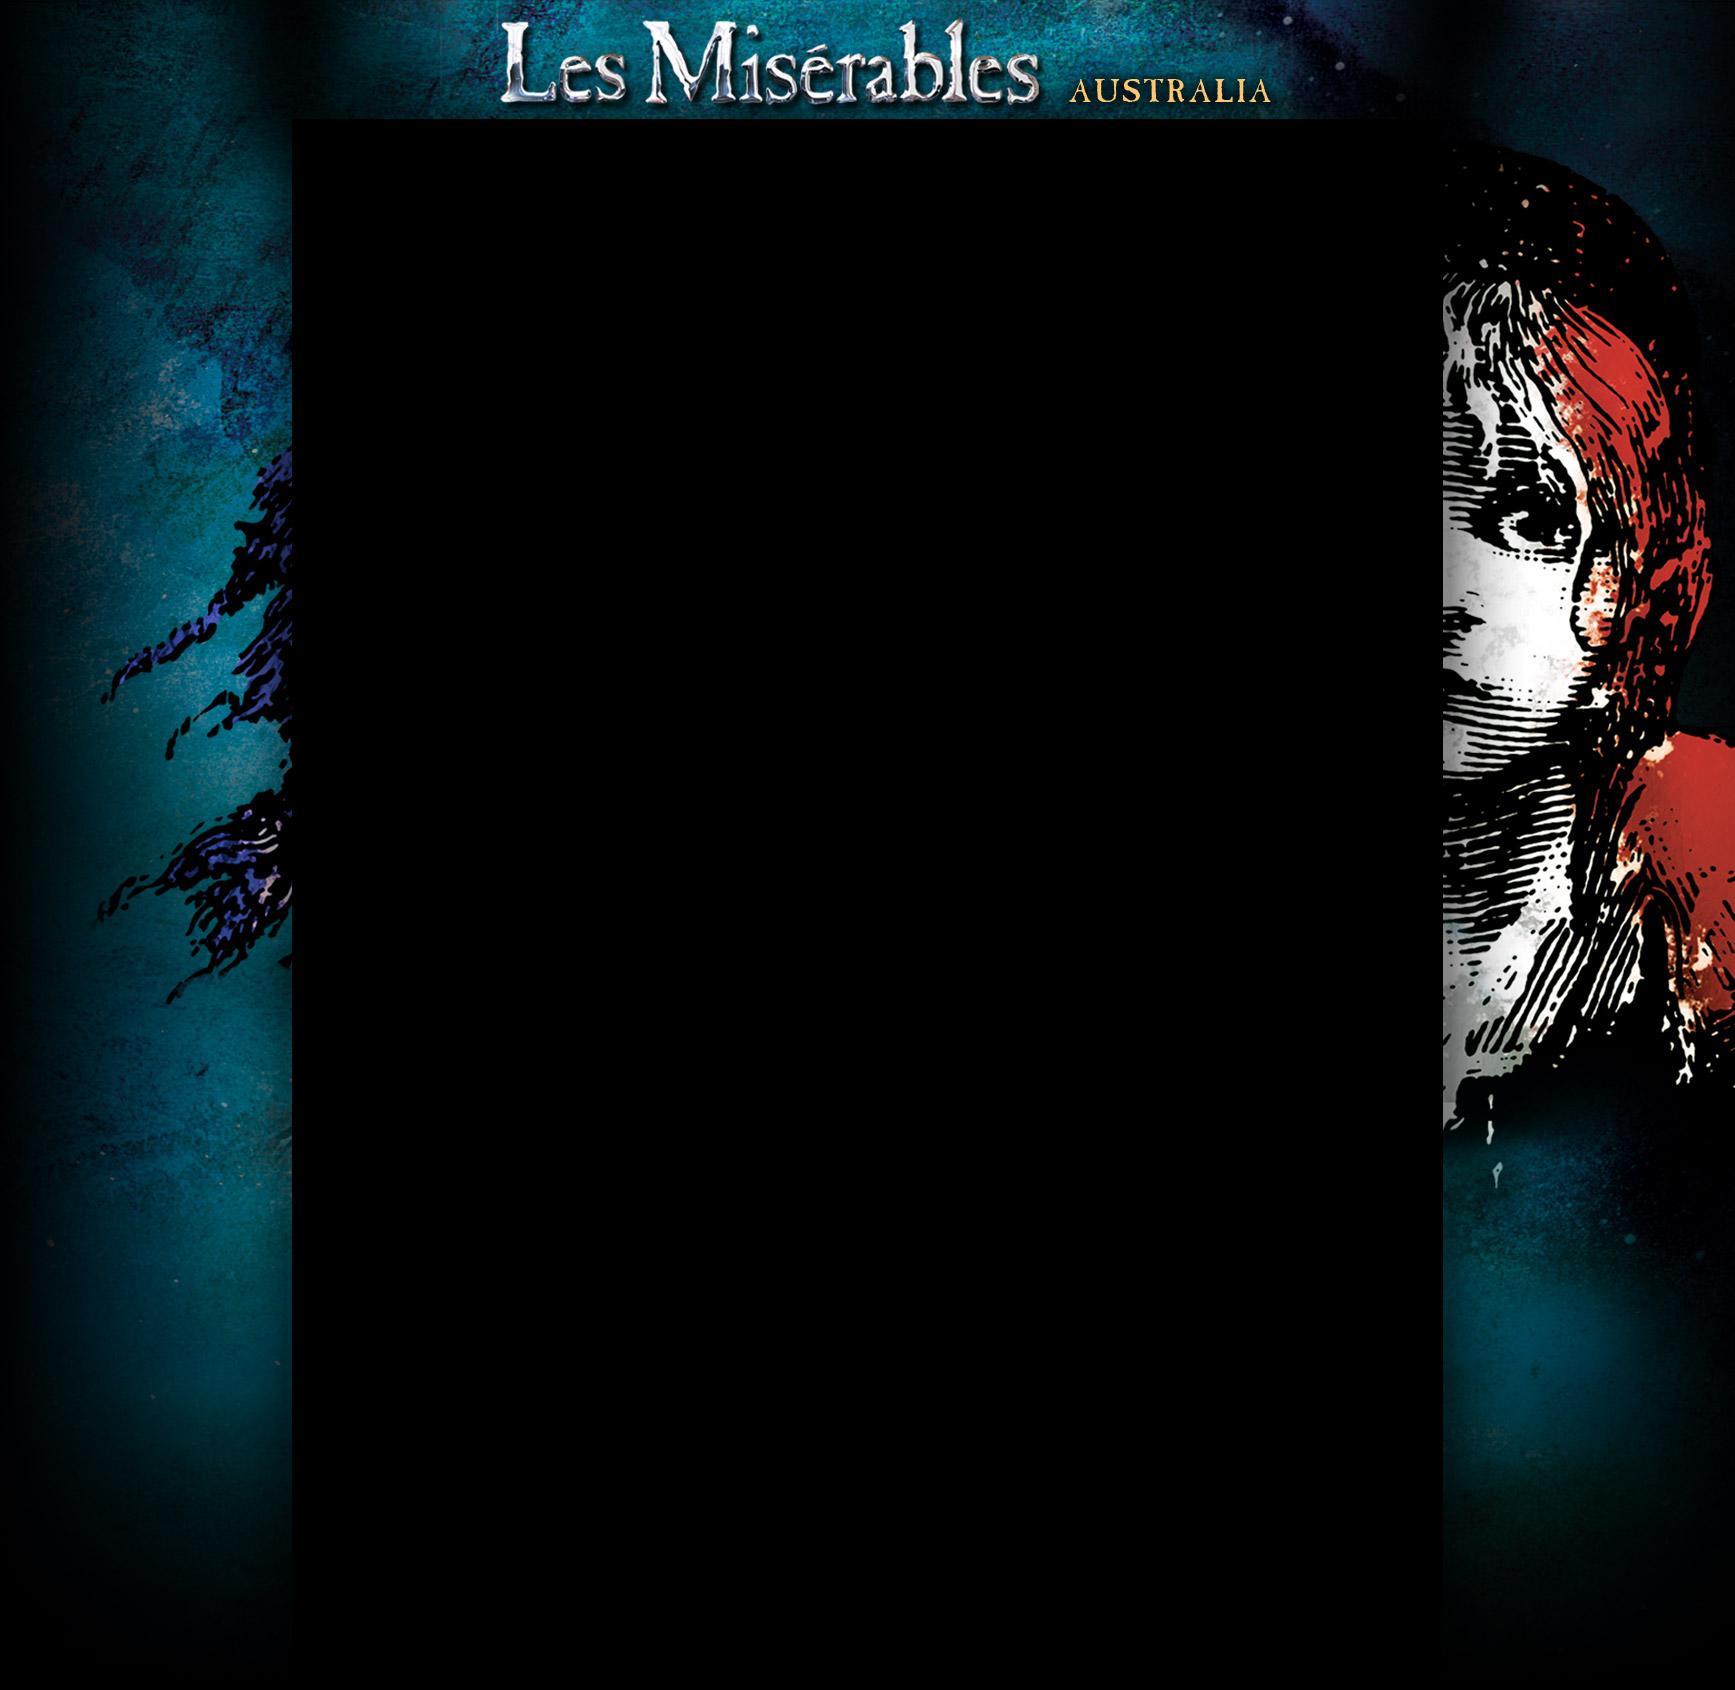 lesmis-background-150609.jpg